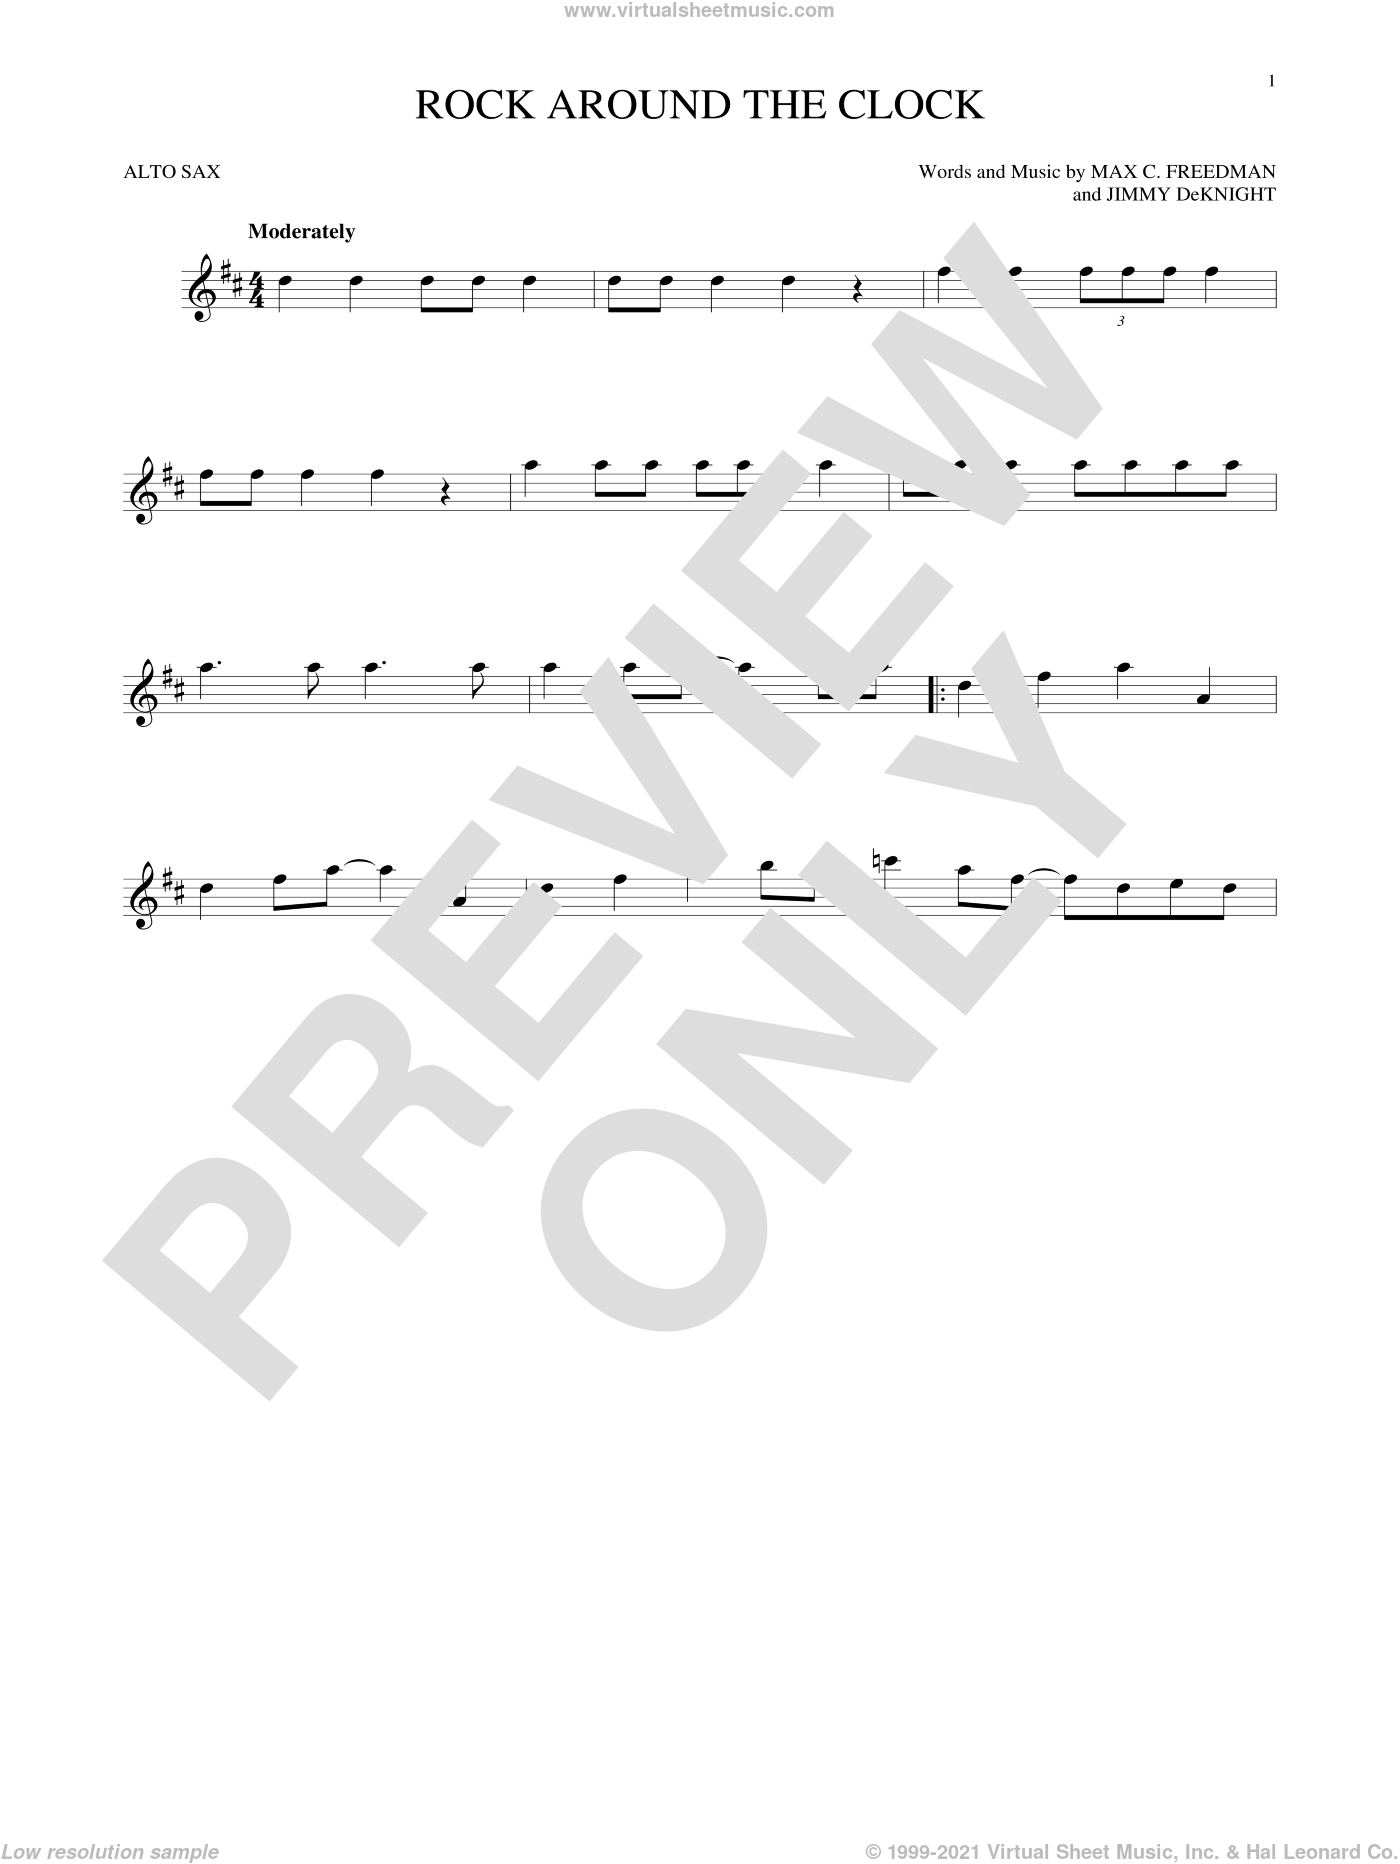 Rock Around The Clock sheet music for alto saxophone solo by Bill Haley & His Comets, Jimmy DeKnight and Max C. Freedman, intermediate skill level